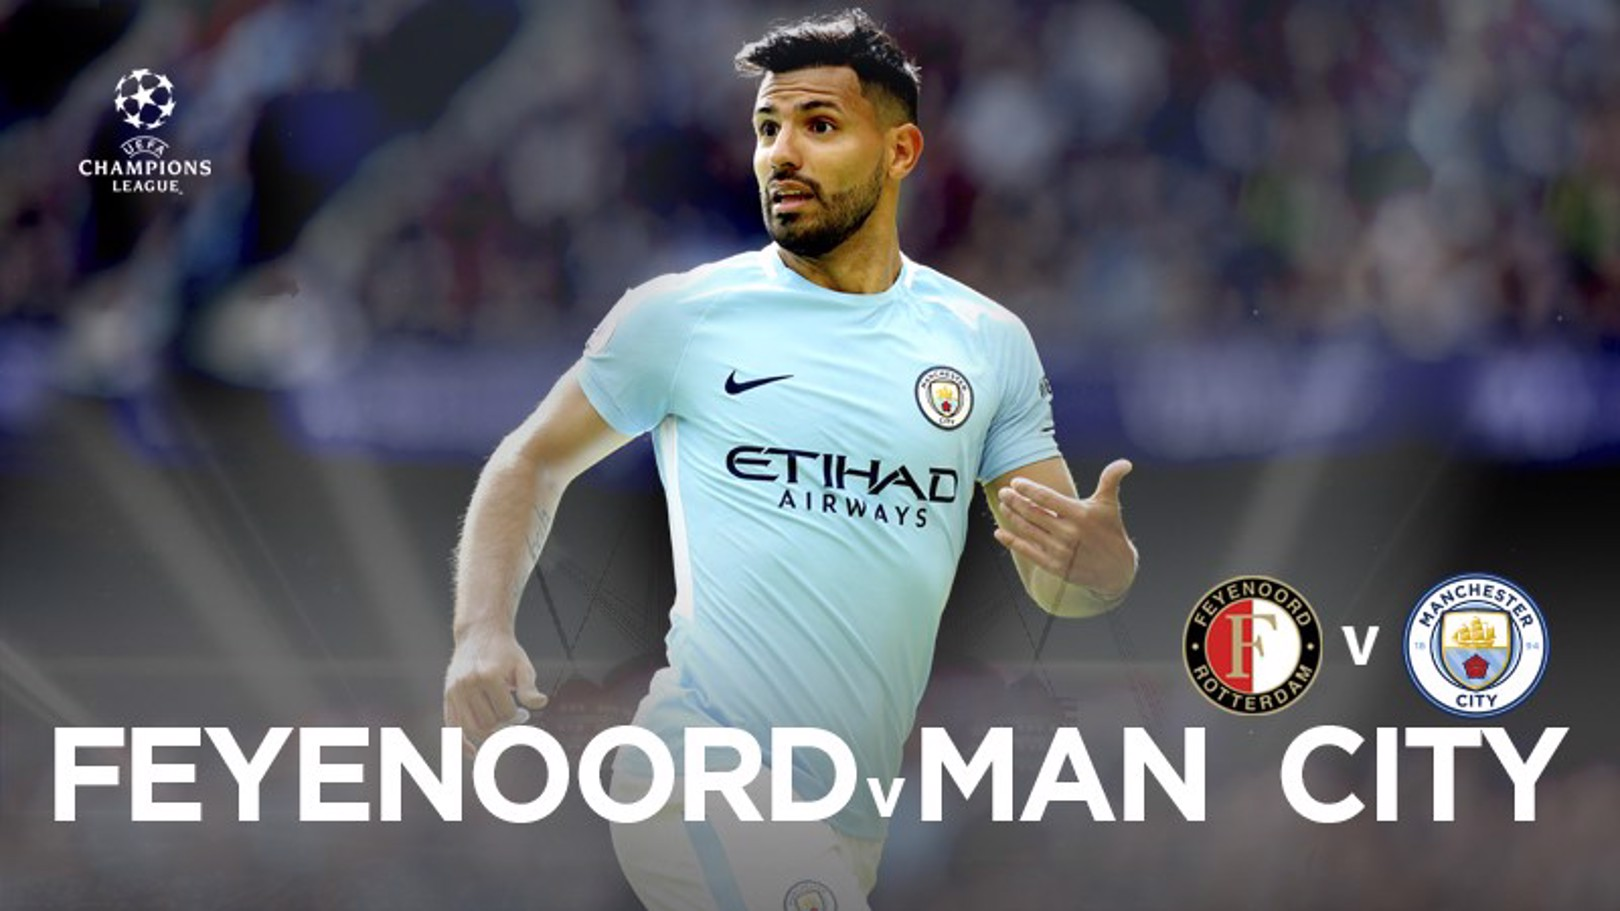 Feyenoord vs City: En direct!